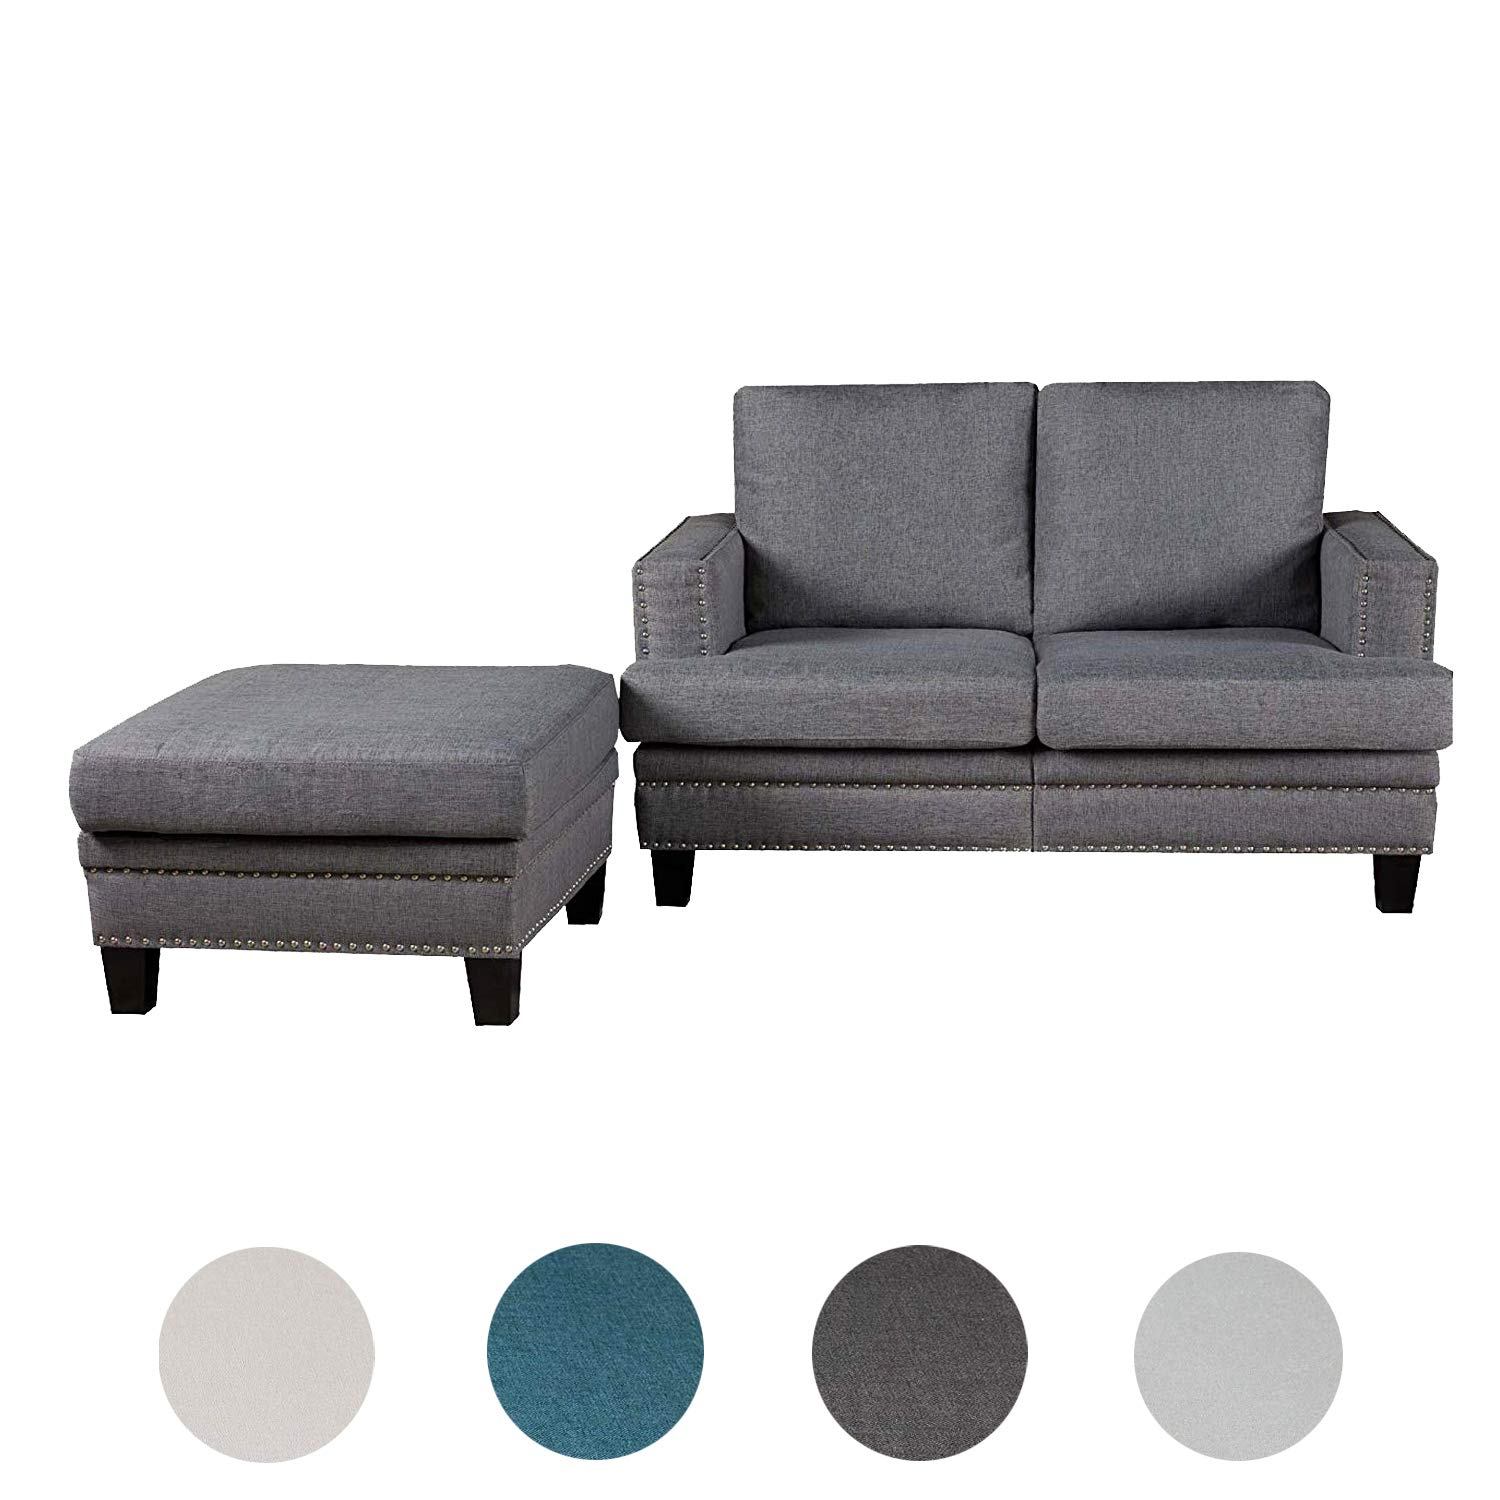 Top Space Loveseat Couch Modern Upholstered Mid Century Sofa Casual Arm Chair/Ottoman Linen Fabric Footstool Rivet Design Household Change Shoe Bench Sofa Living Room Furniture(2 PCs, Dark Grey) by Top Space